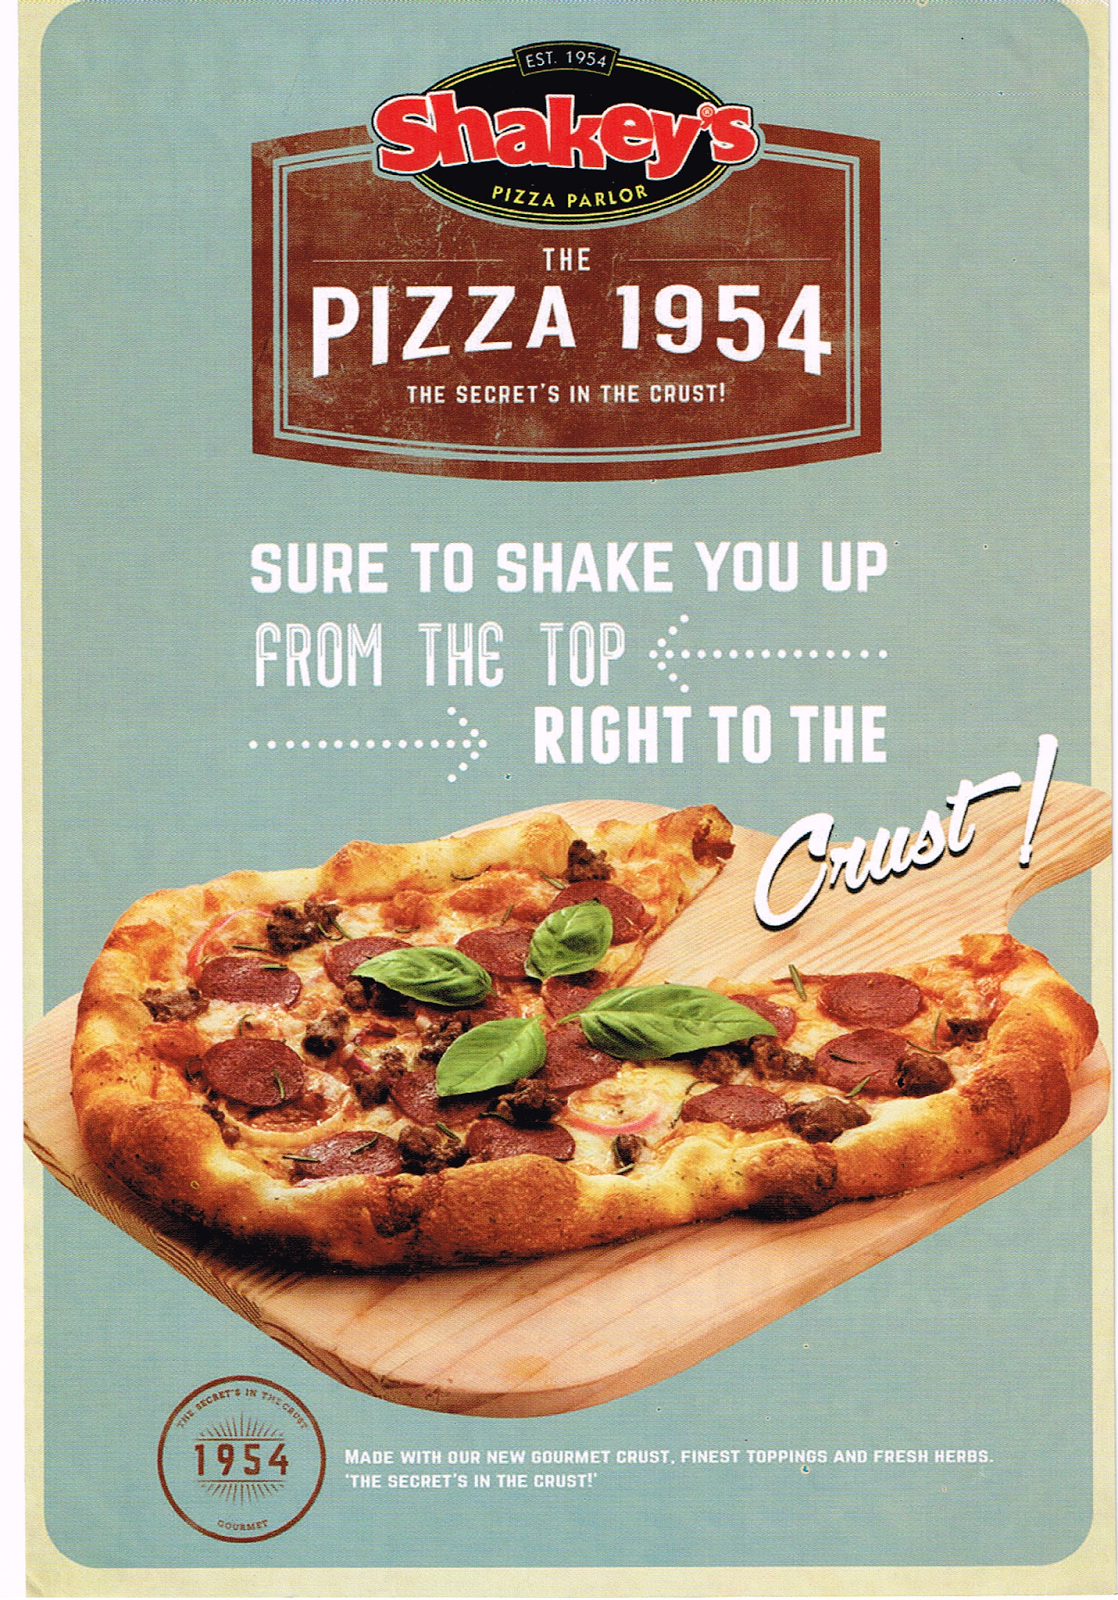 Shakey's The Pizza 1954: The Secret's In The Crust!